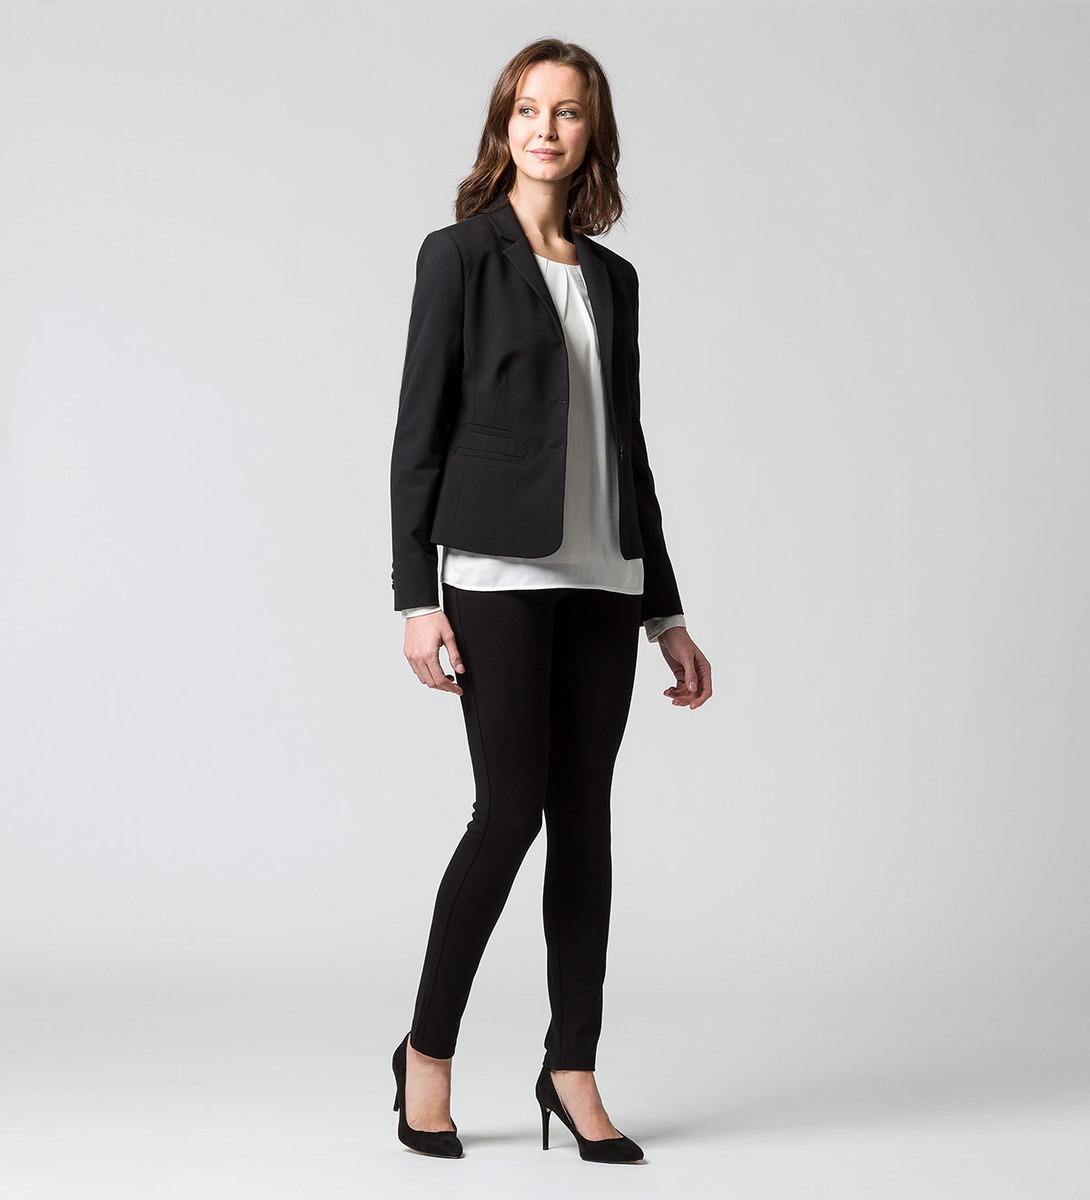 Blazer im Classic-Look in black